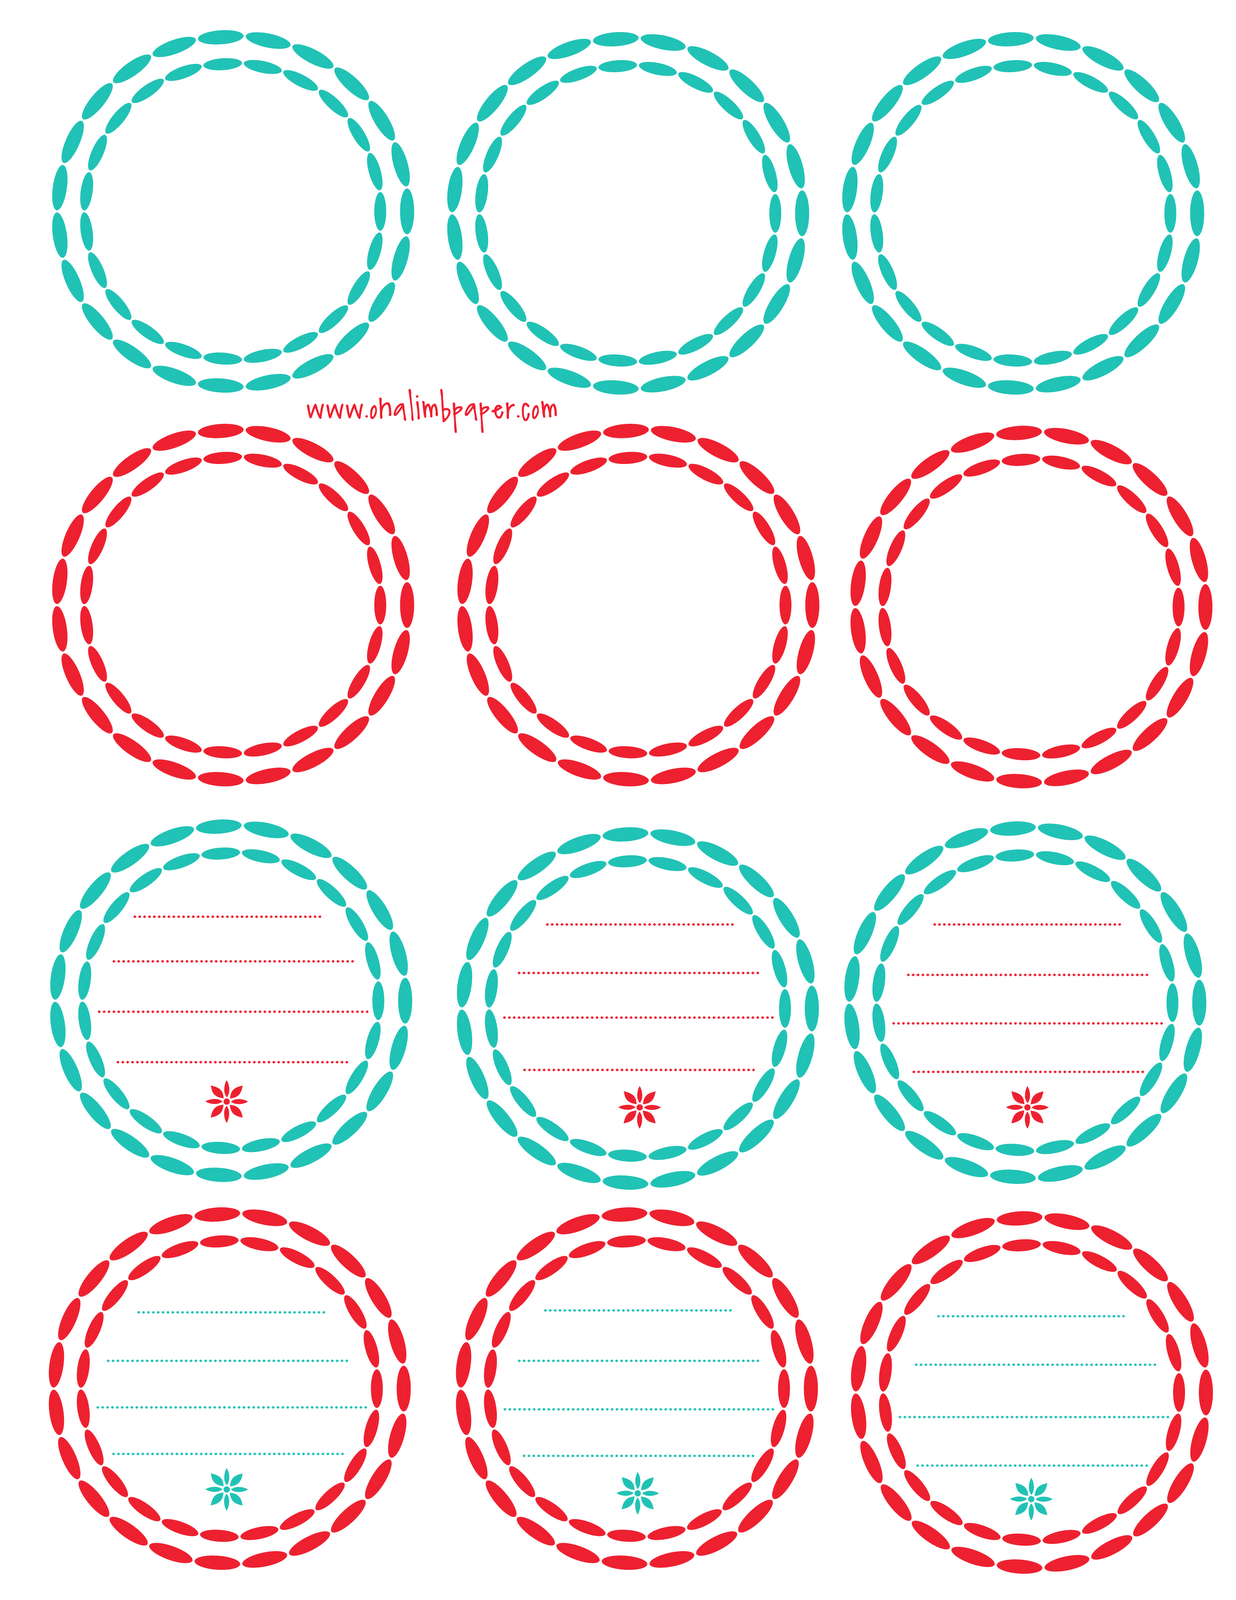 5 Images of Free Printable Circle Tags